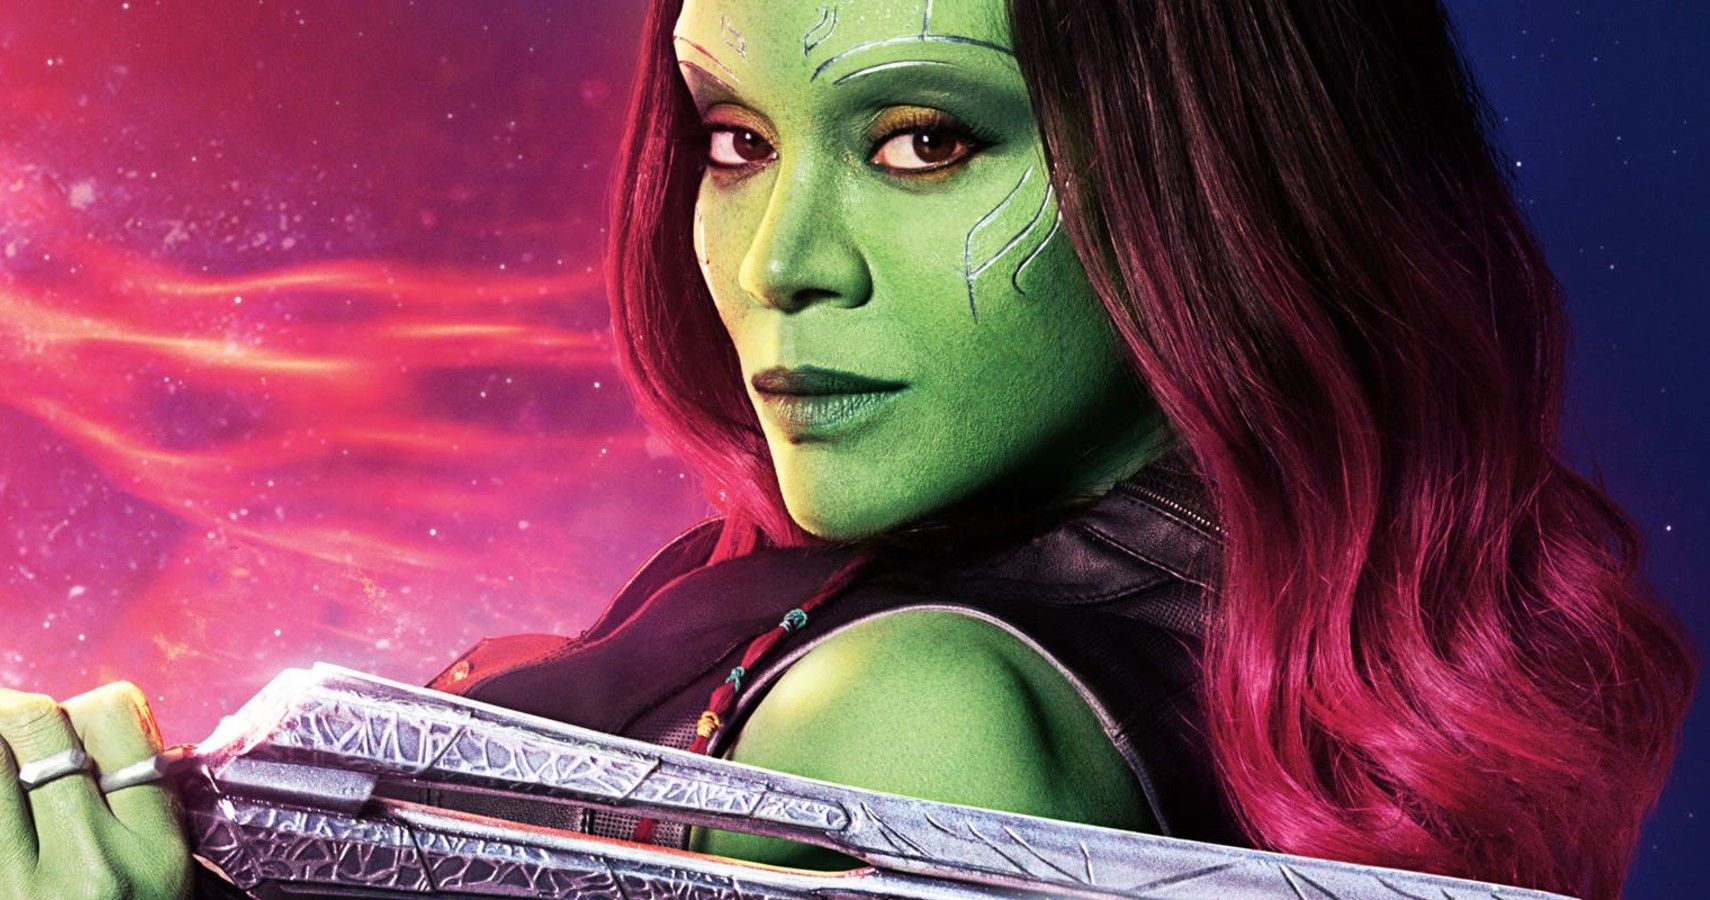 Is Gamora alive in the Soul World? Why or why not? - Quora